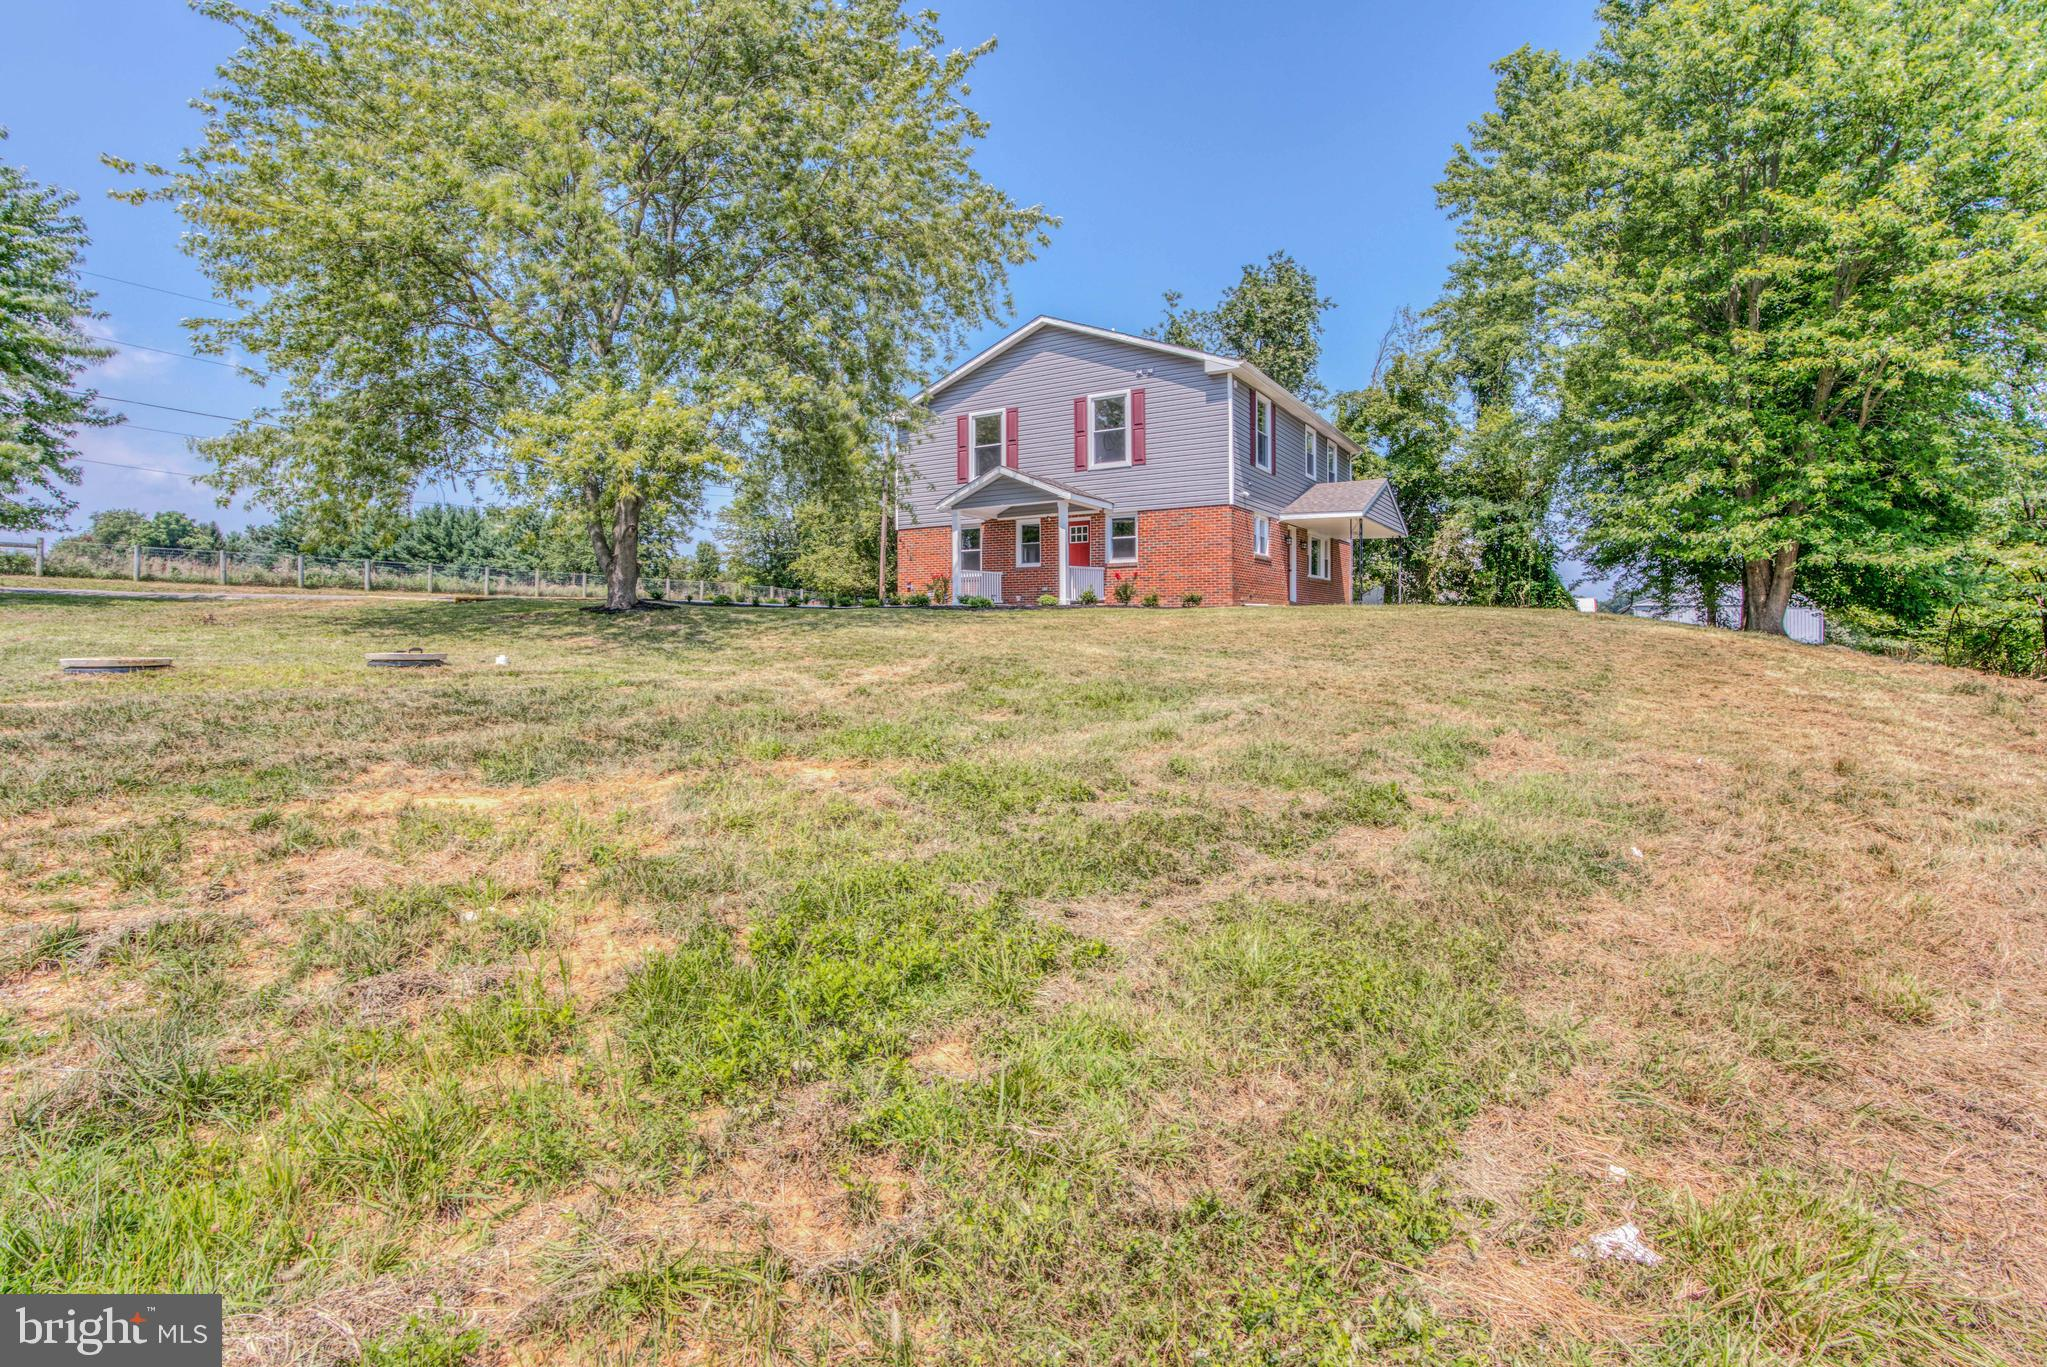 4014 SCHROEDER AVENUE, PERRY HALL, MD 21128